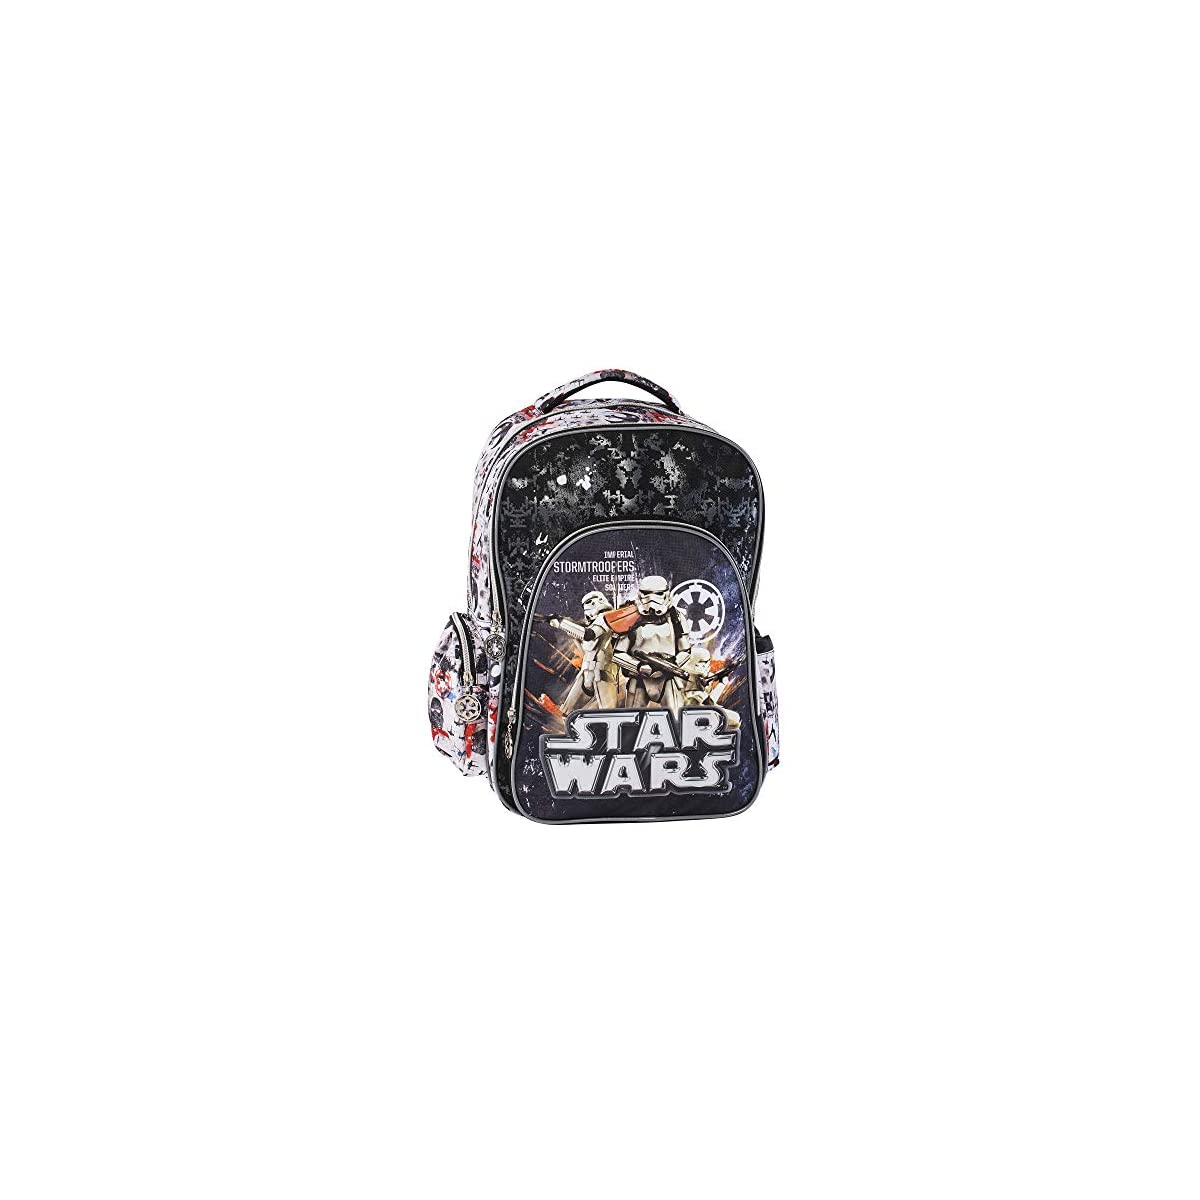 51ZO1Hi%2BQoL. SS1200  - Graffiti Star Wars Mochila Escolar, 44 Centimeters